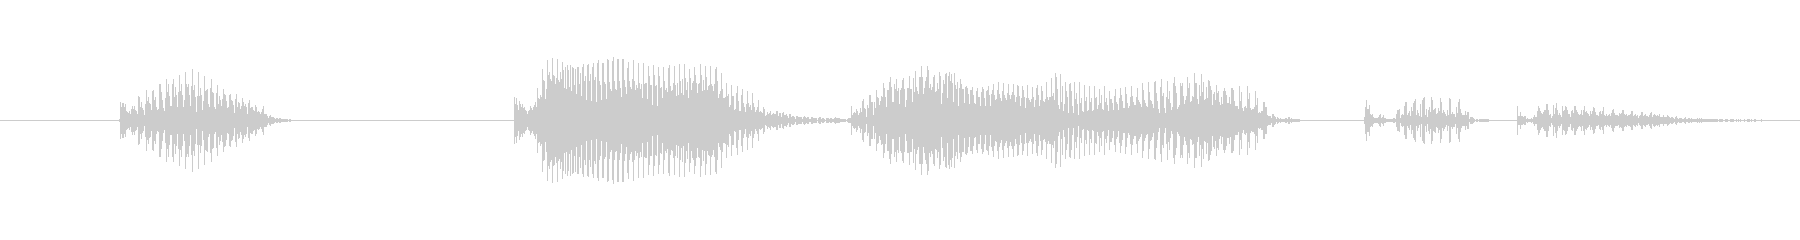 What on earth do you mean? (Boys, boys)'s unreproduced waveform